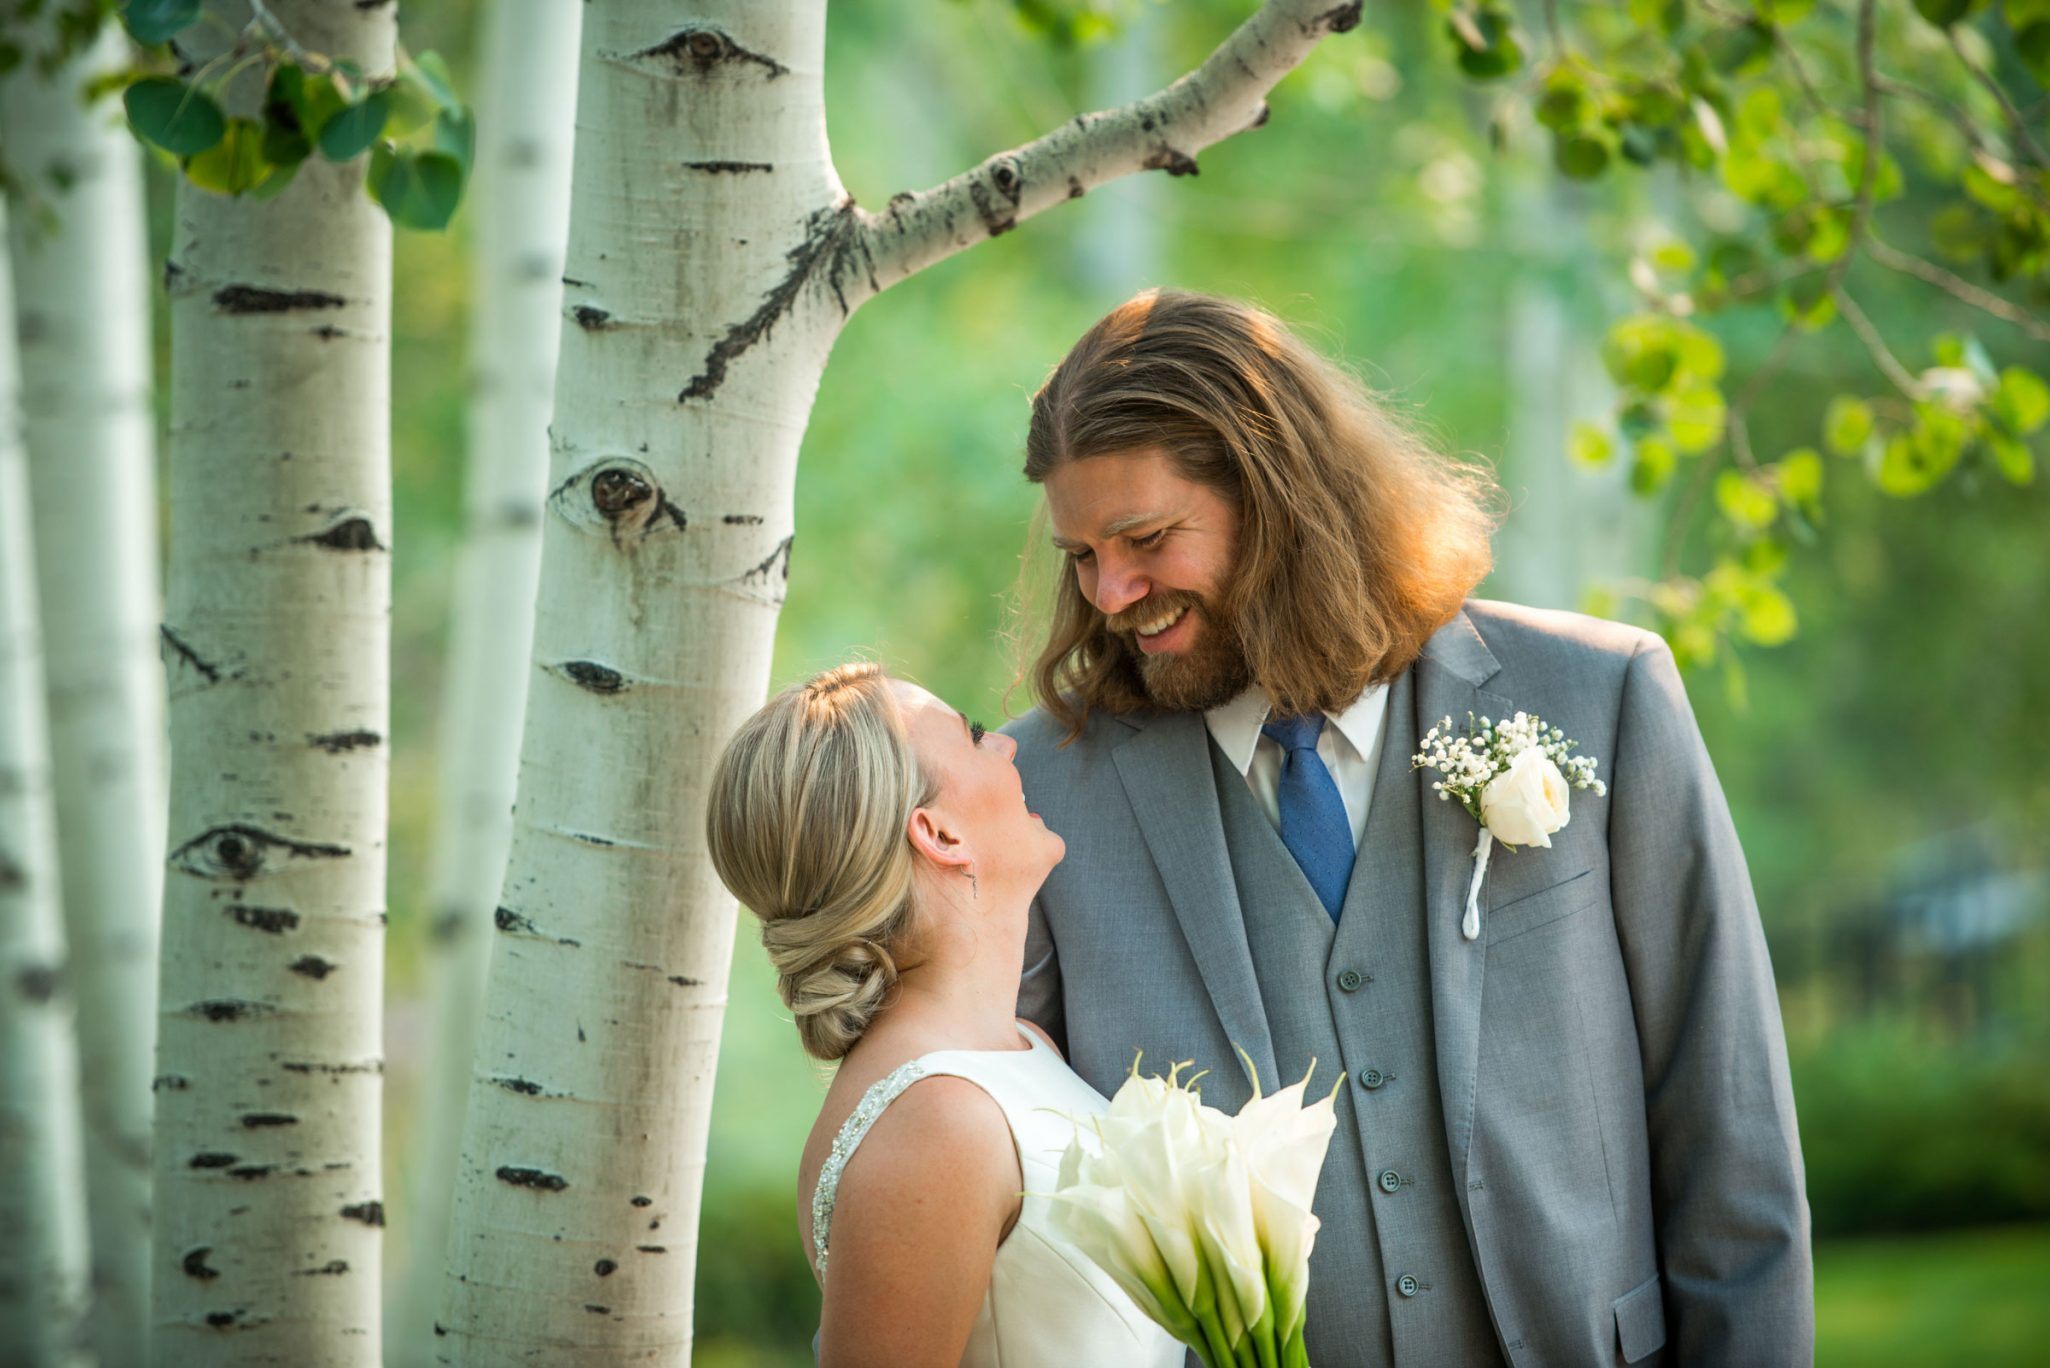 A Love Stronger than Fire. Wedding held during the 416 fire in Durango, Colorado.